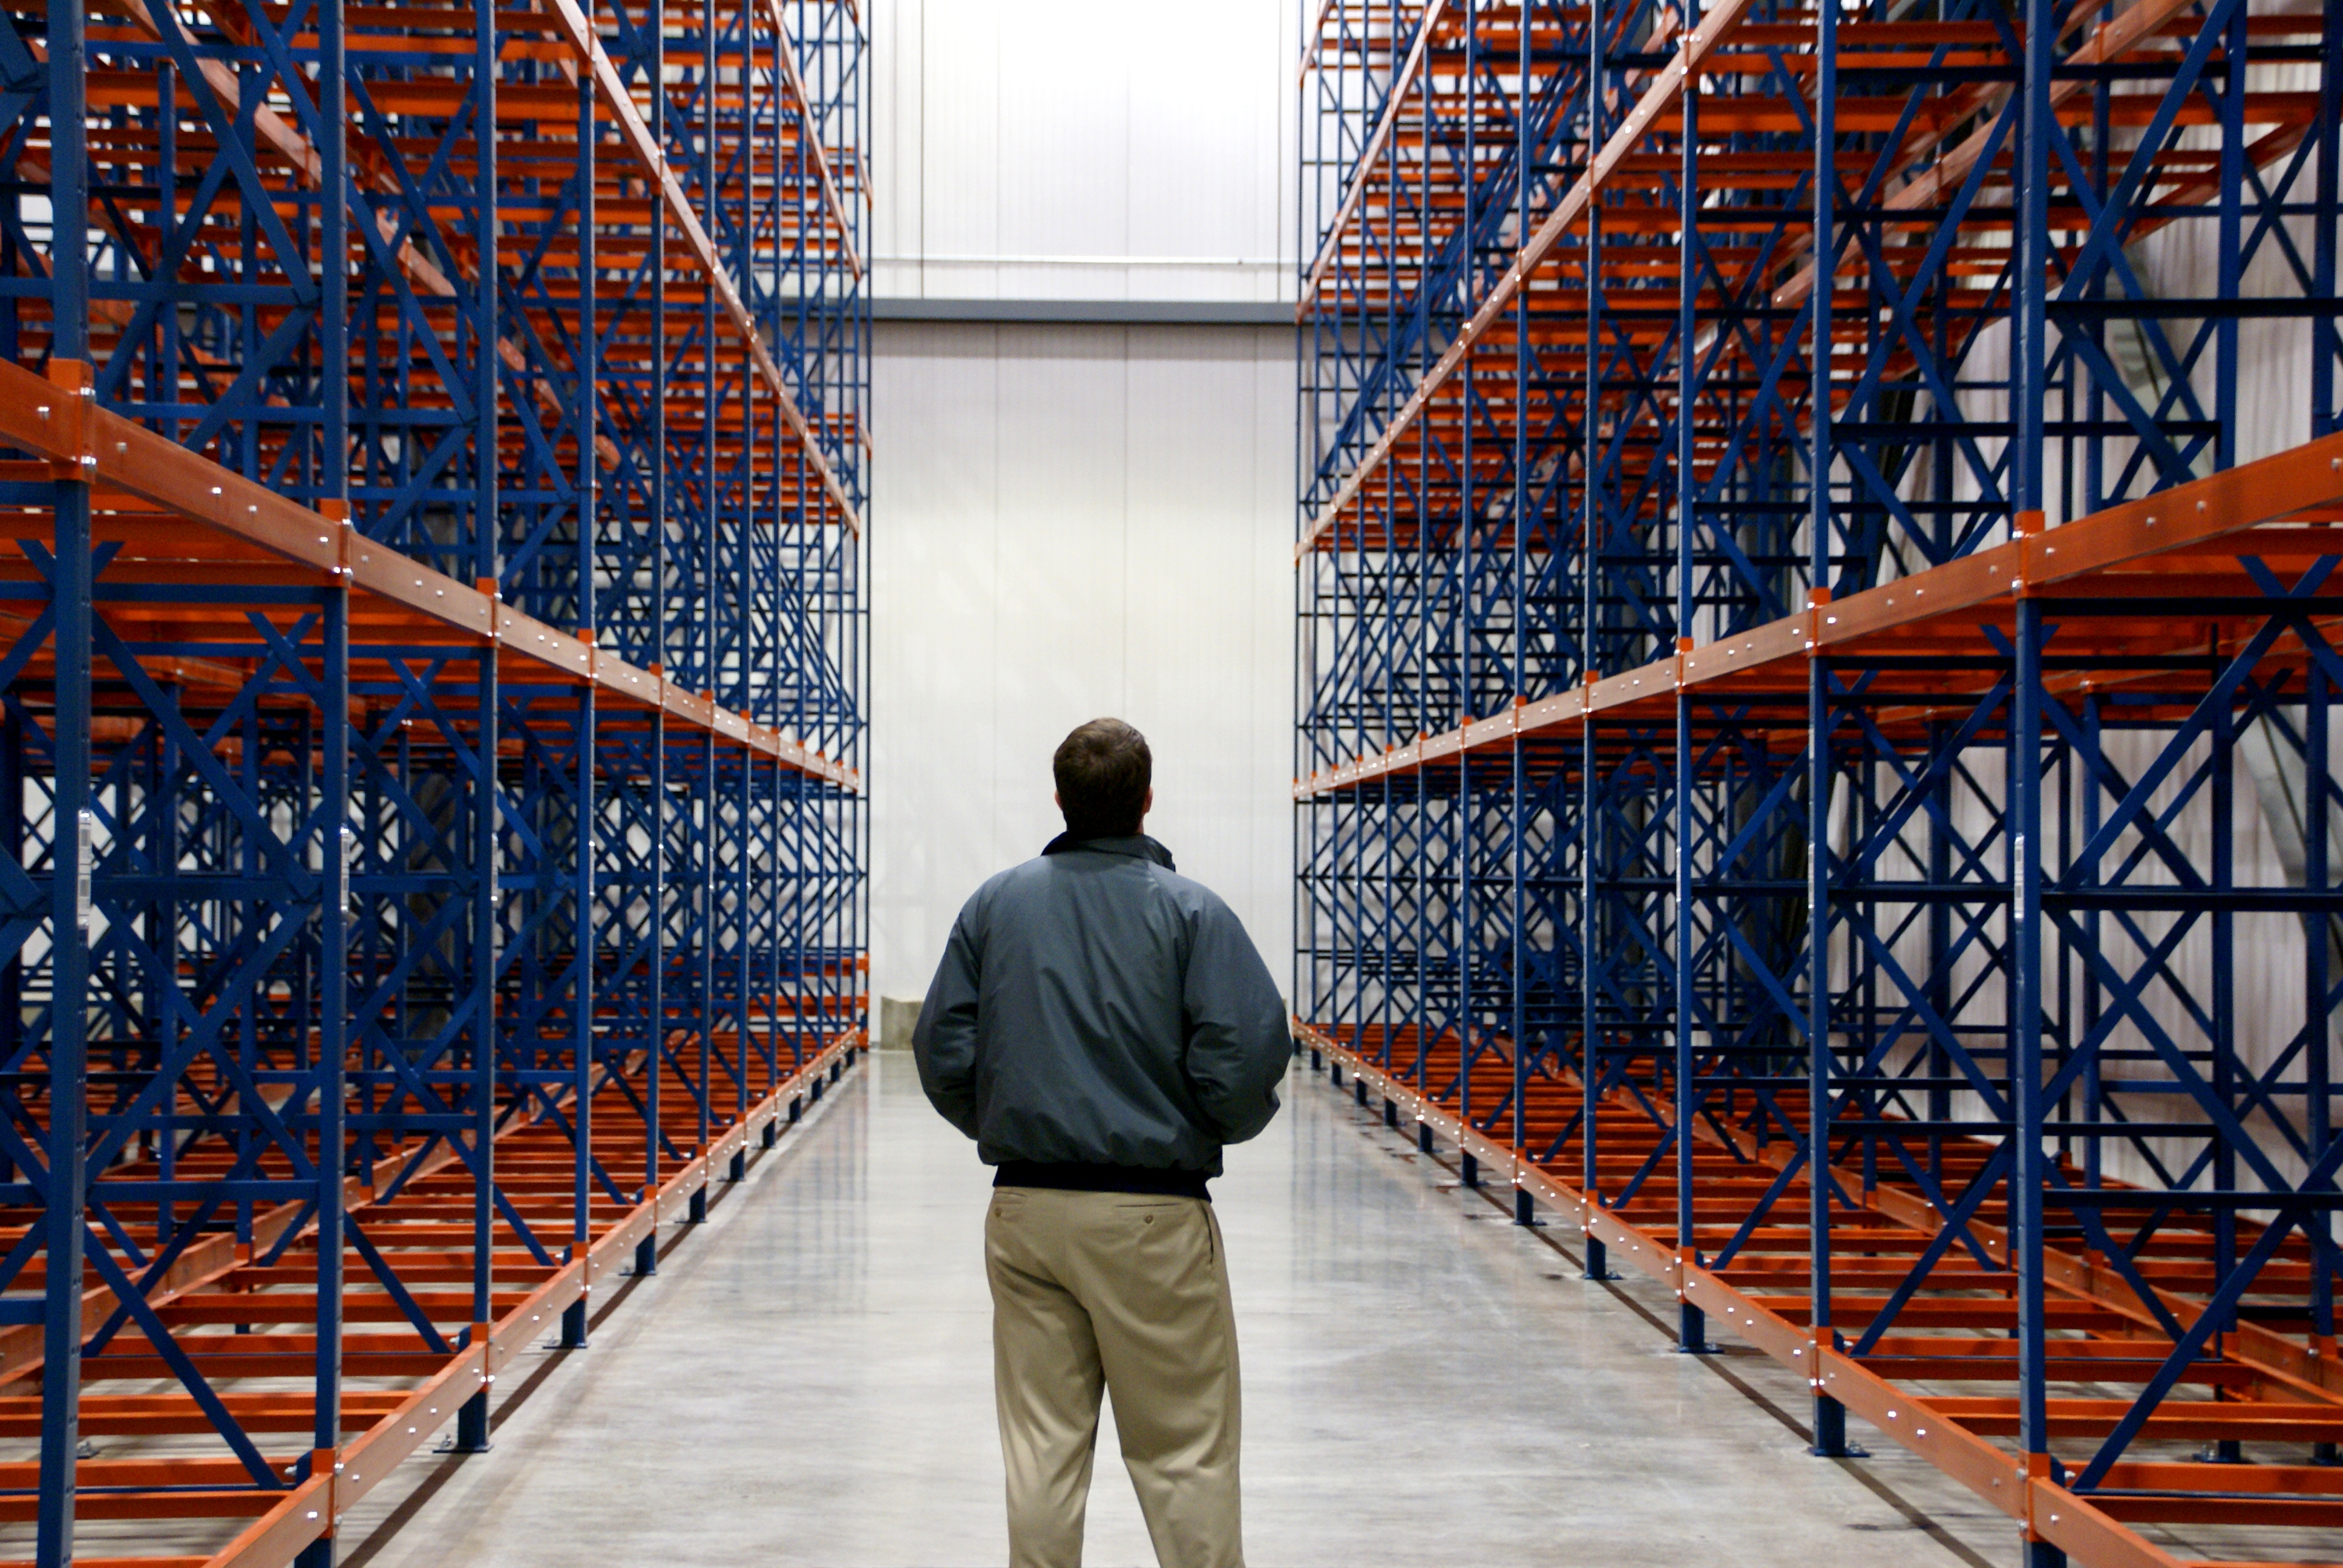 Storage Facility: Cold Storage Facility Design